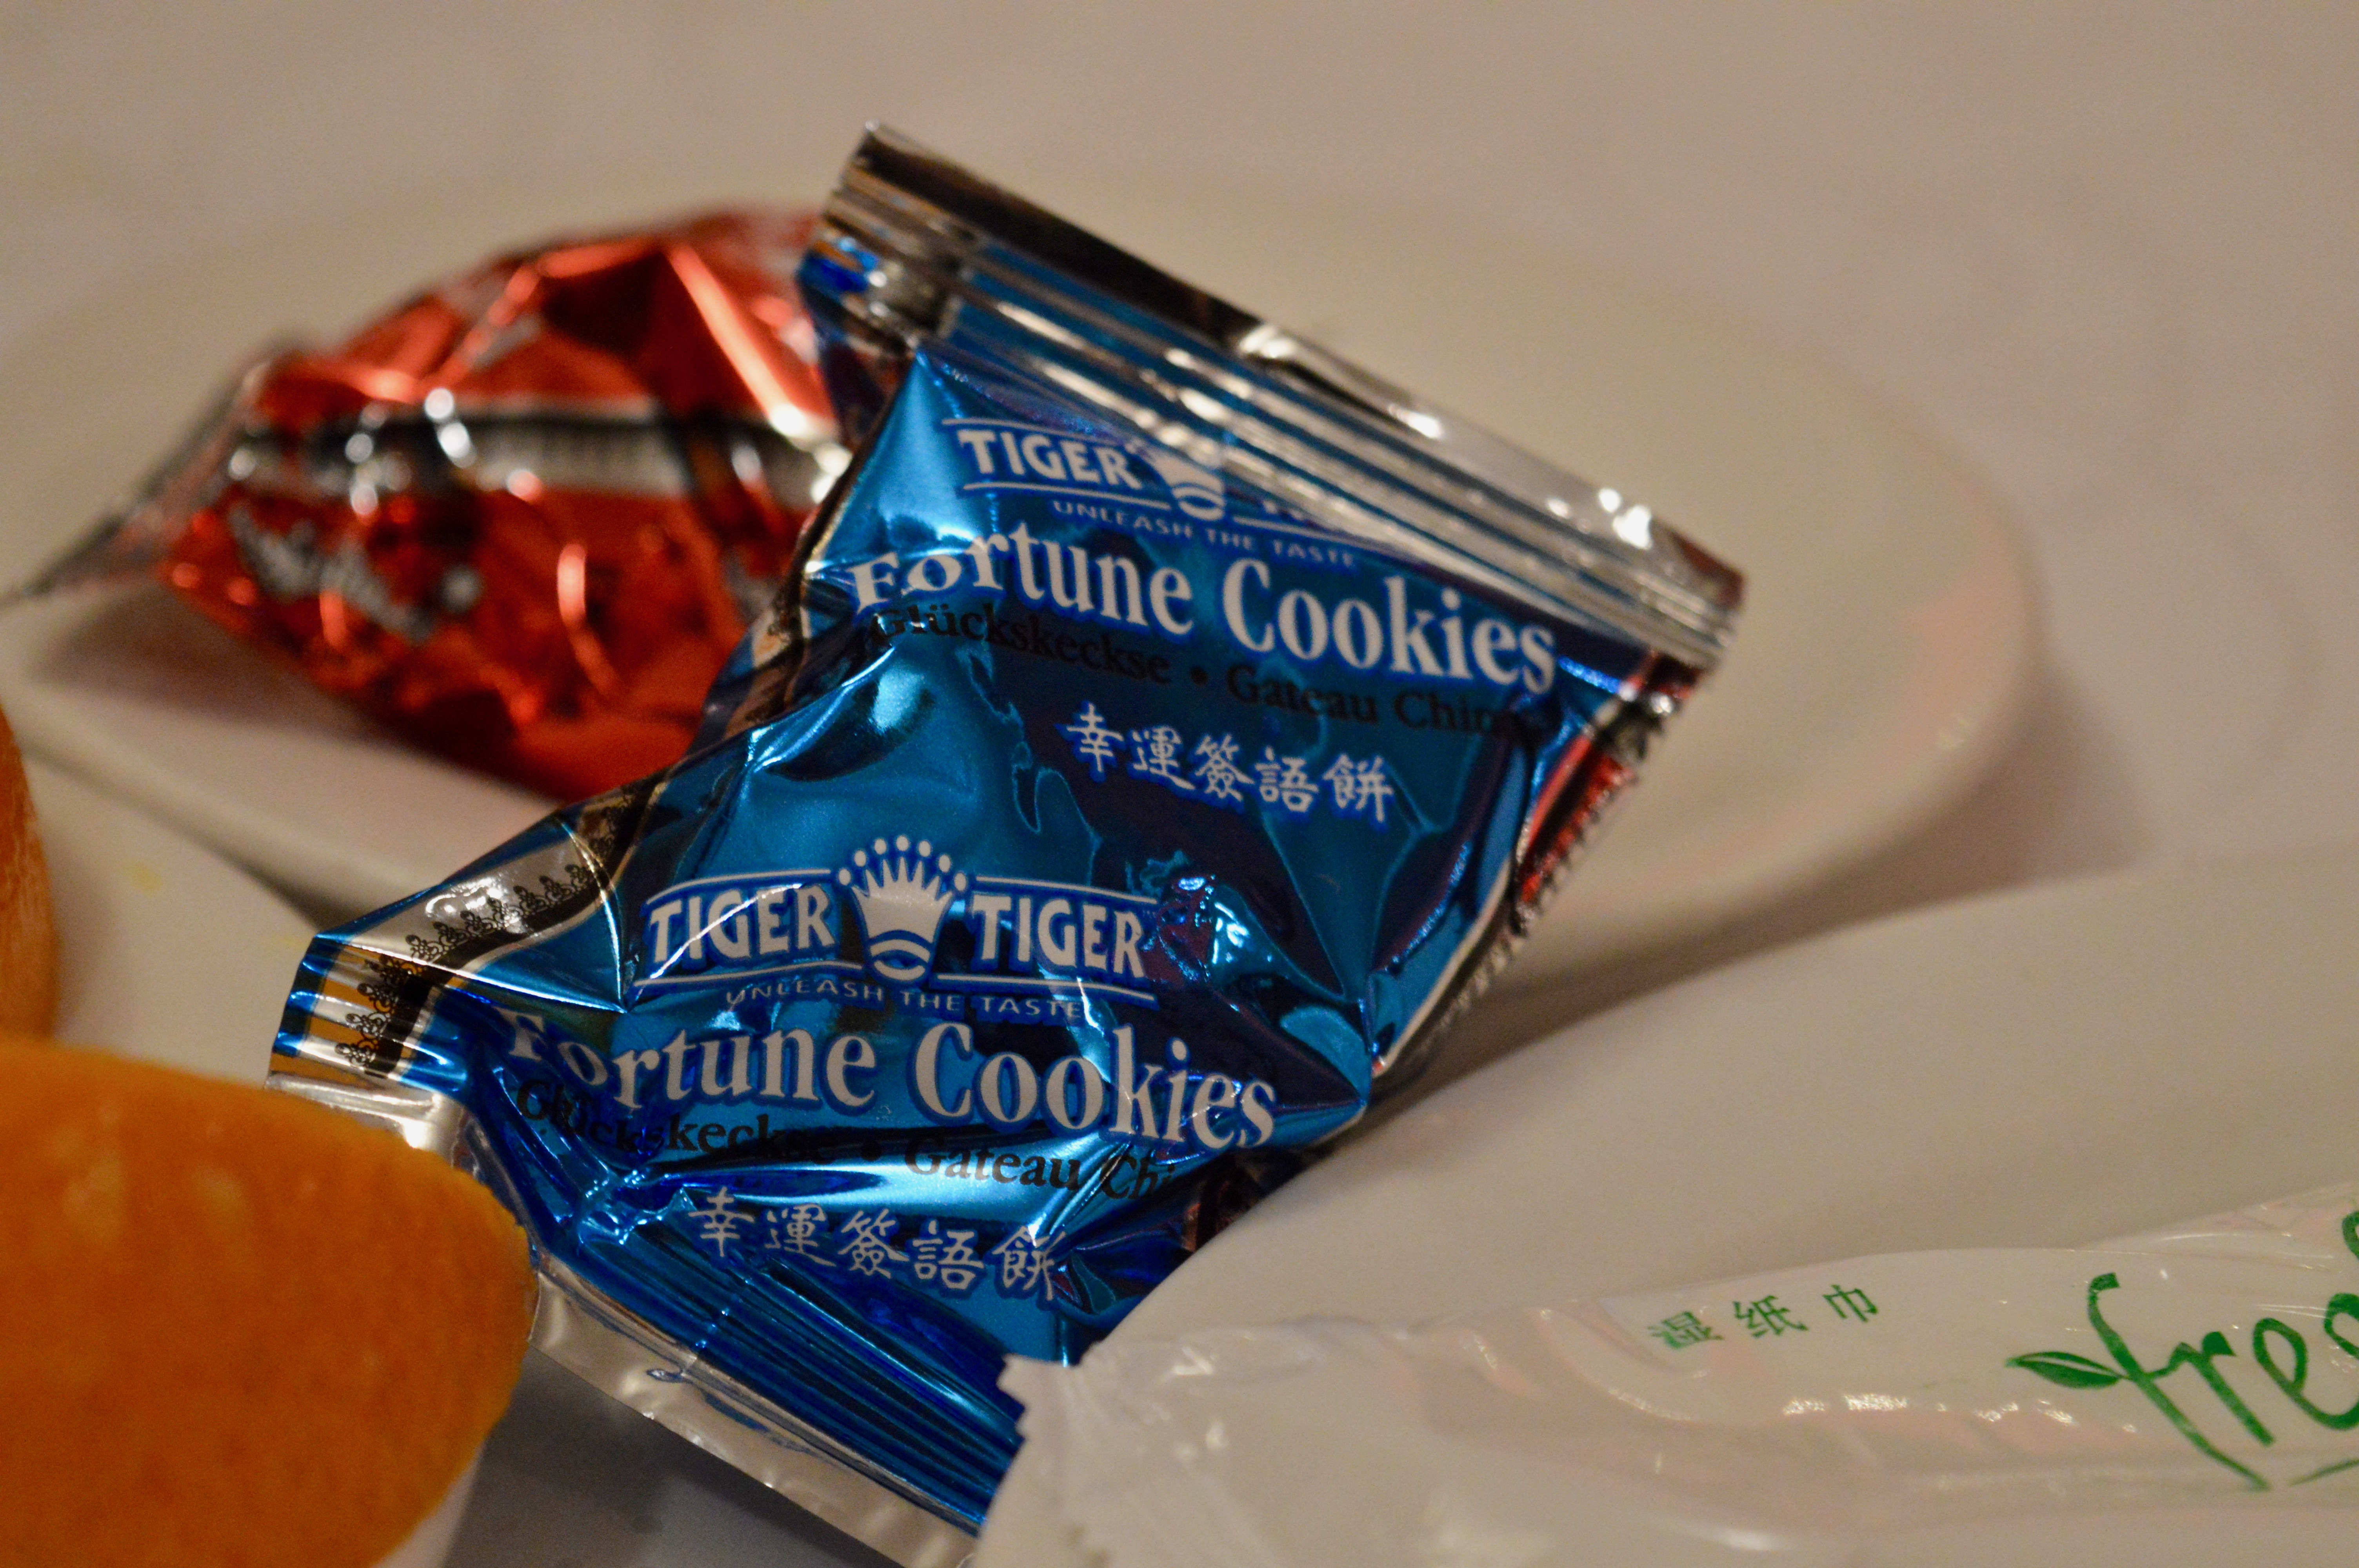 fortune-cookie-imperial-gateshead-low-fell-chinese-restaurant-elle-blonde-luxury-lifestyle-destination-blog